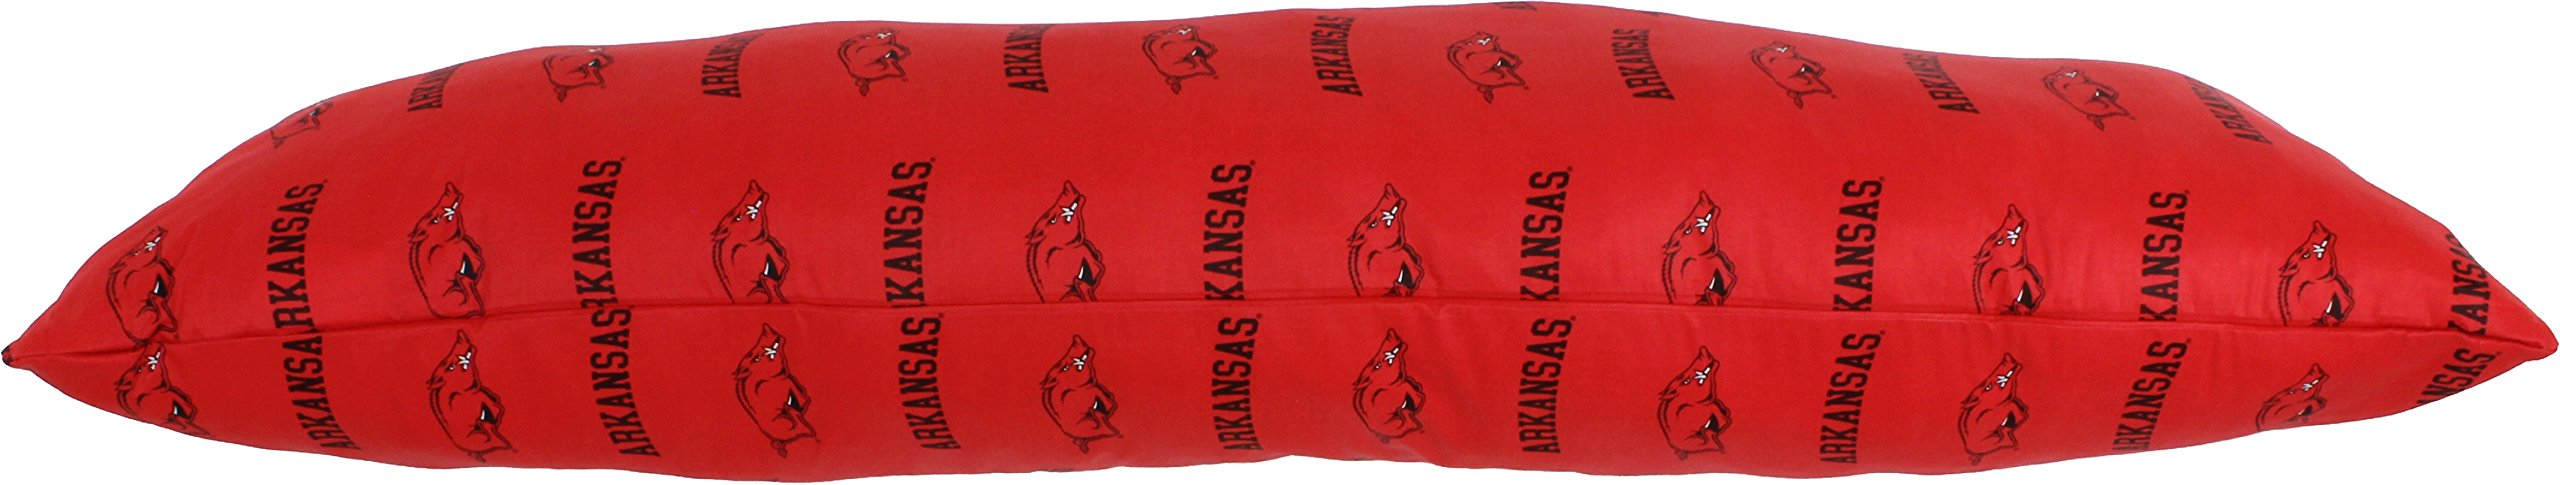 College Covers Arkansas Razorbacks Printed Body Pillow, 20'' x 60'' by College Covers (Image #4)